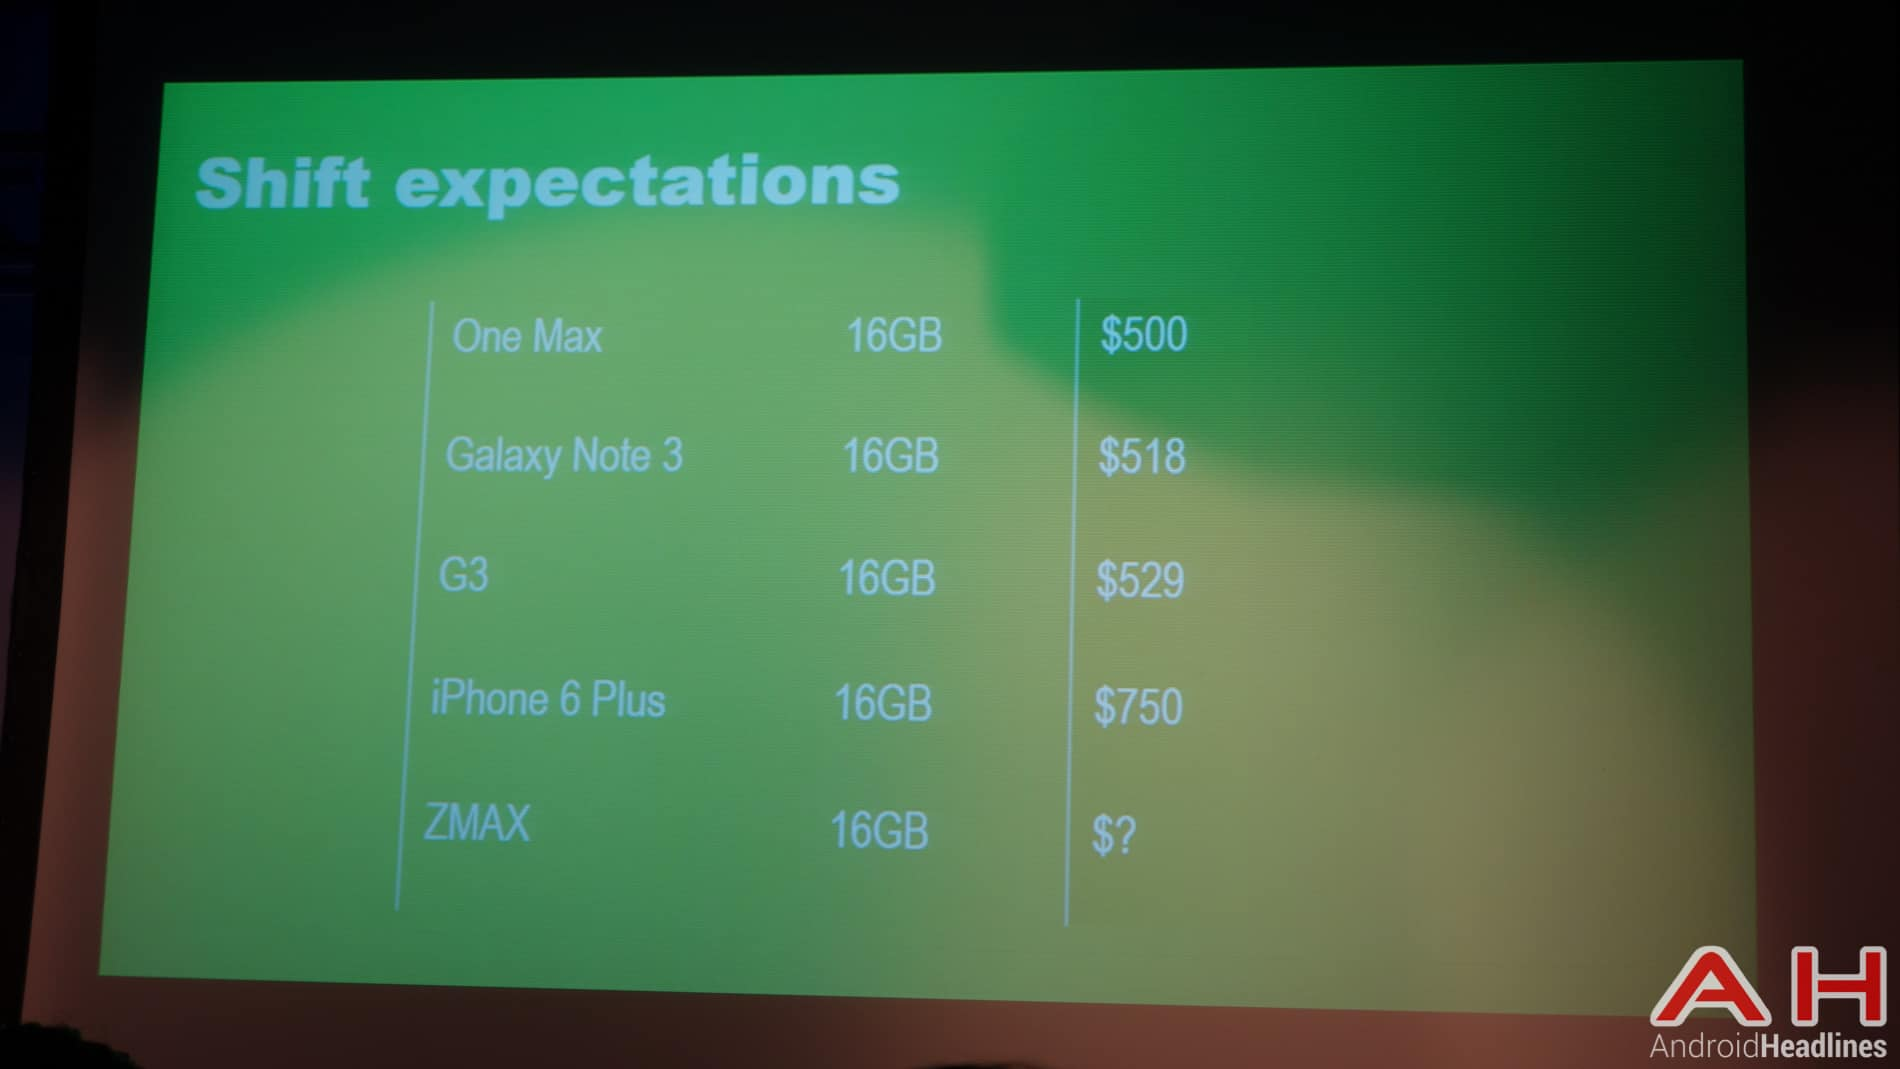 ZTE-Price-Expectations-AH-1